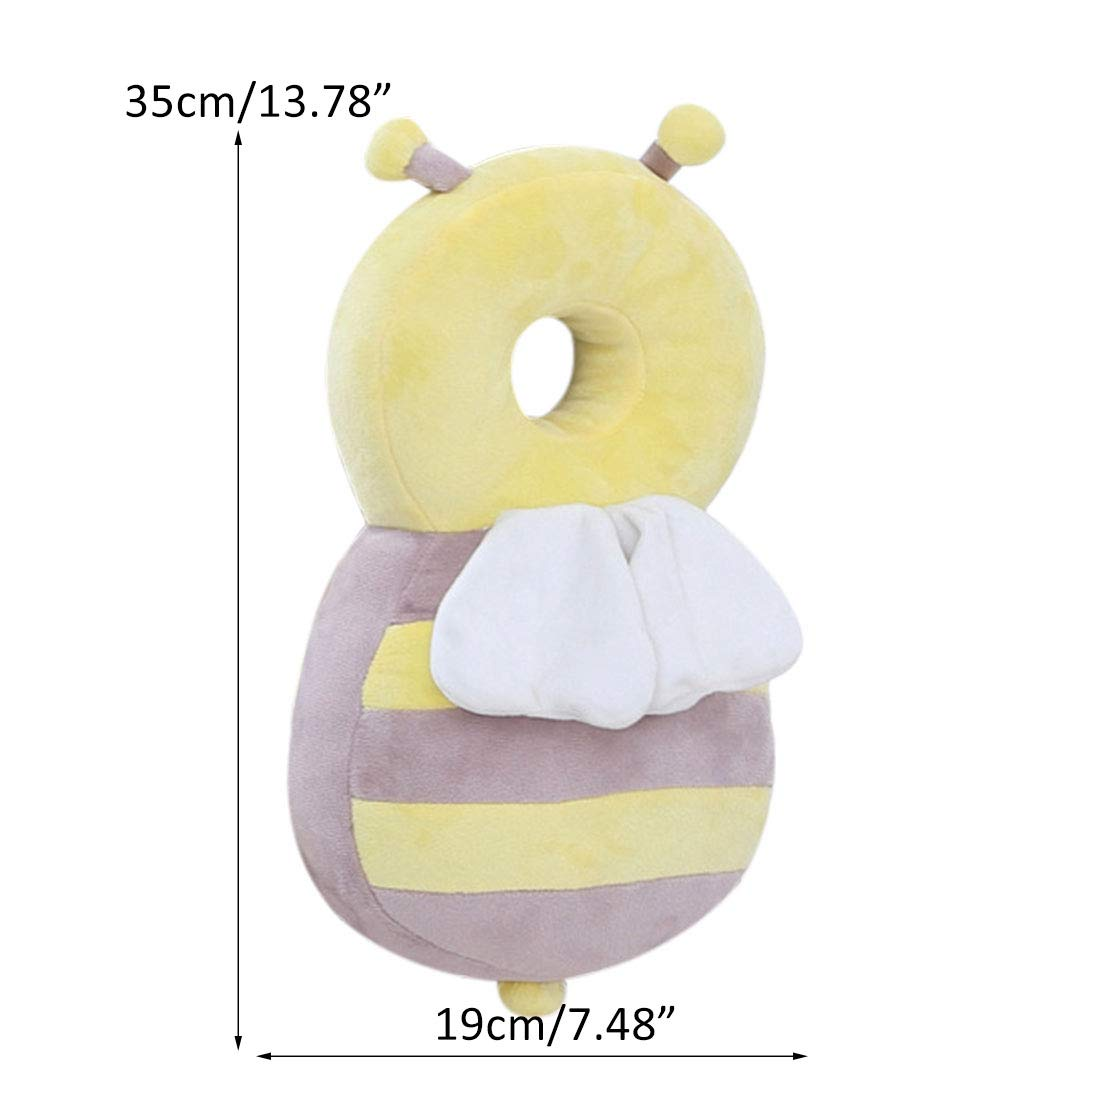 Bverionant Soft Baby Head Protection Pad Adjustable Safety Pads Toddlers Protective Products #1